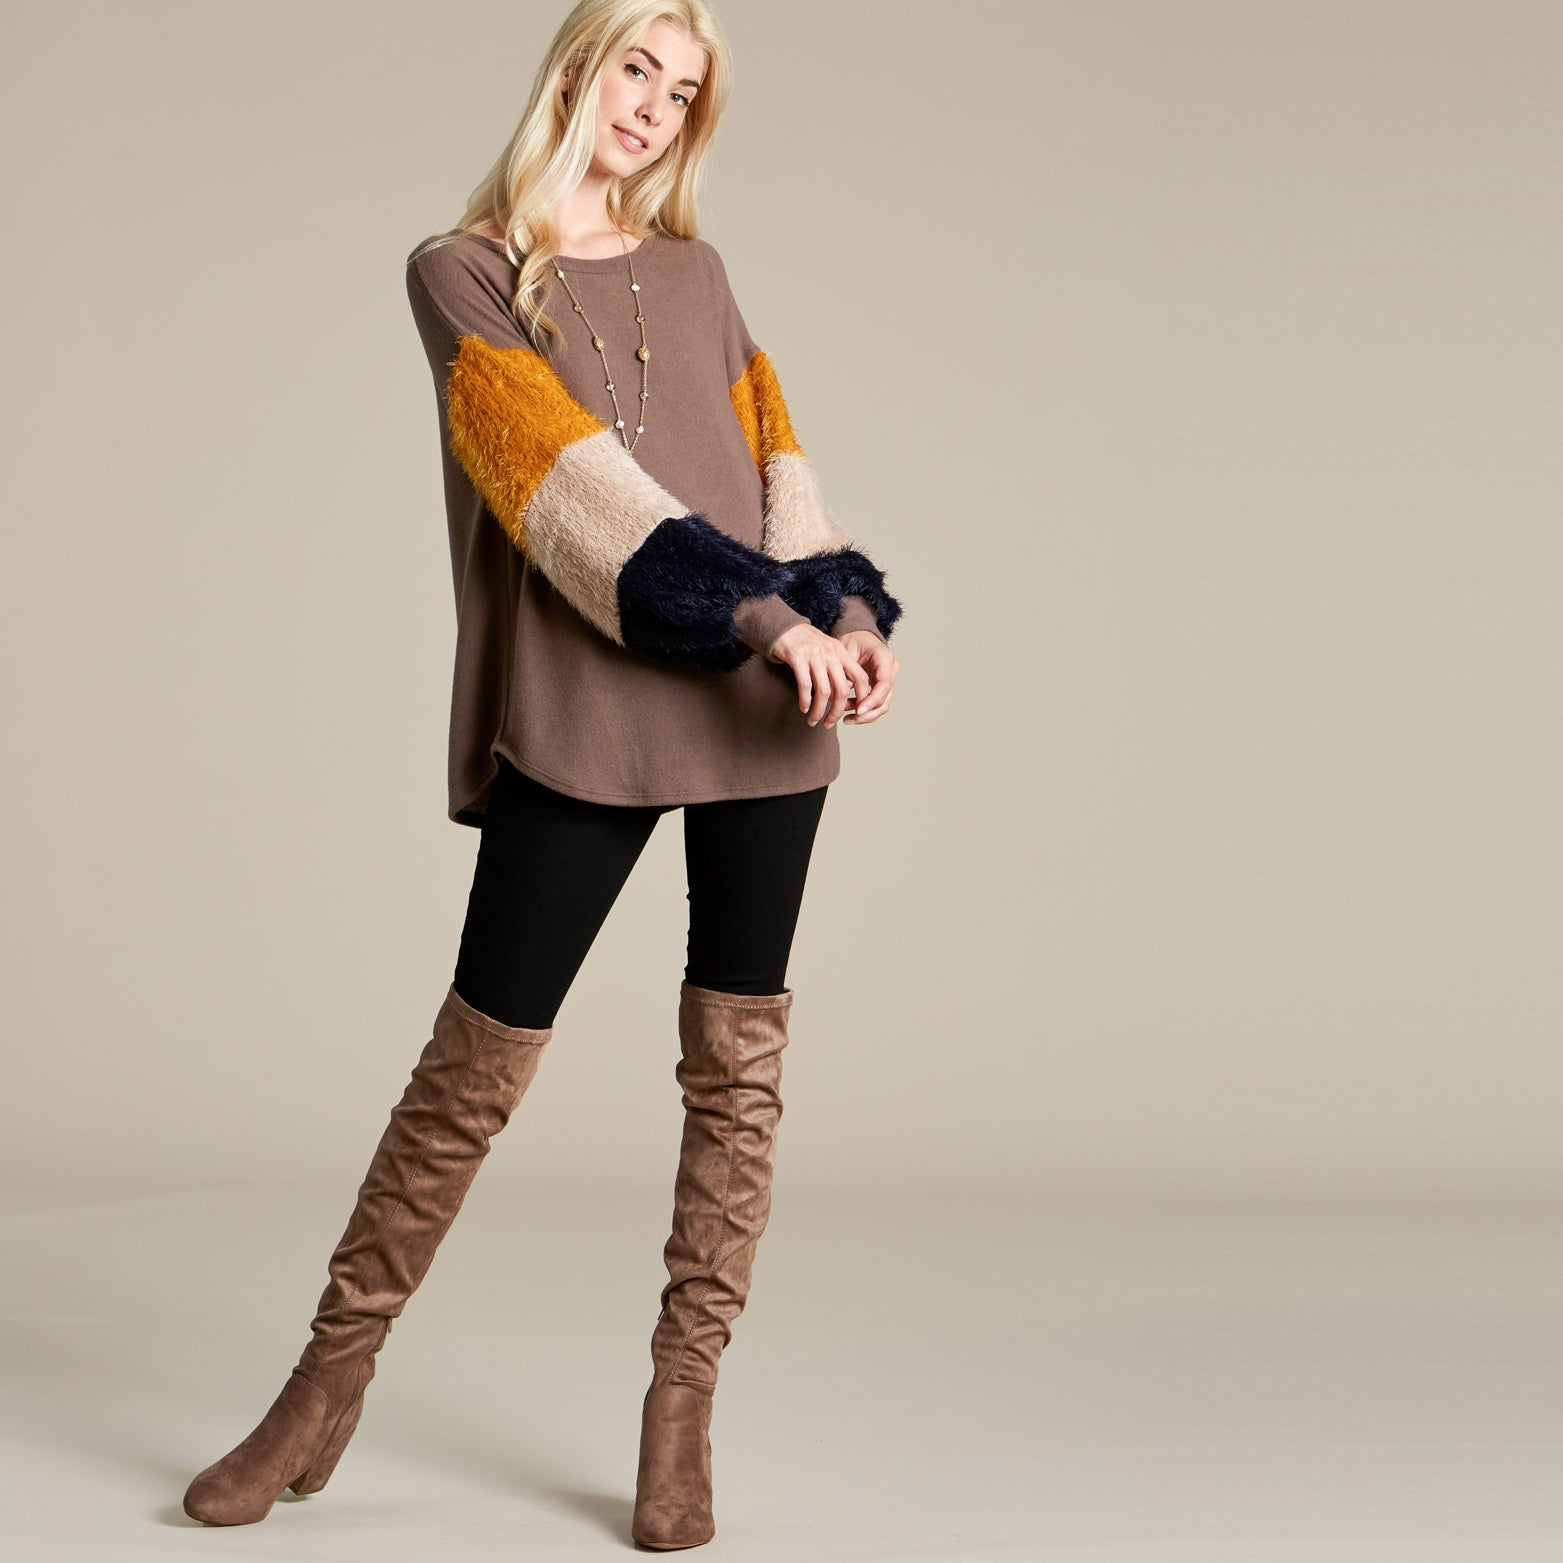 Cozy Colorblock Sweater - Love, Kuza